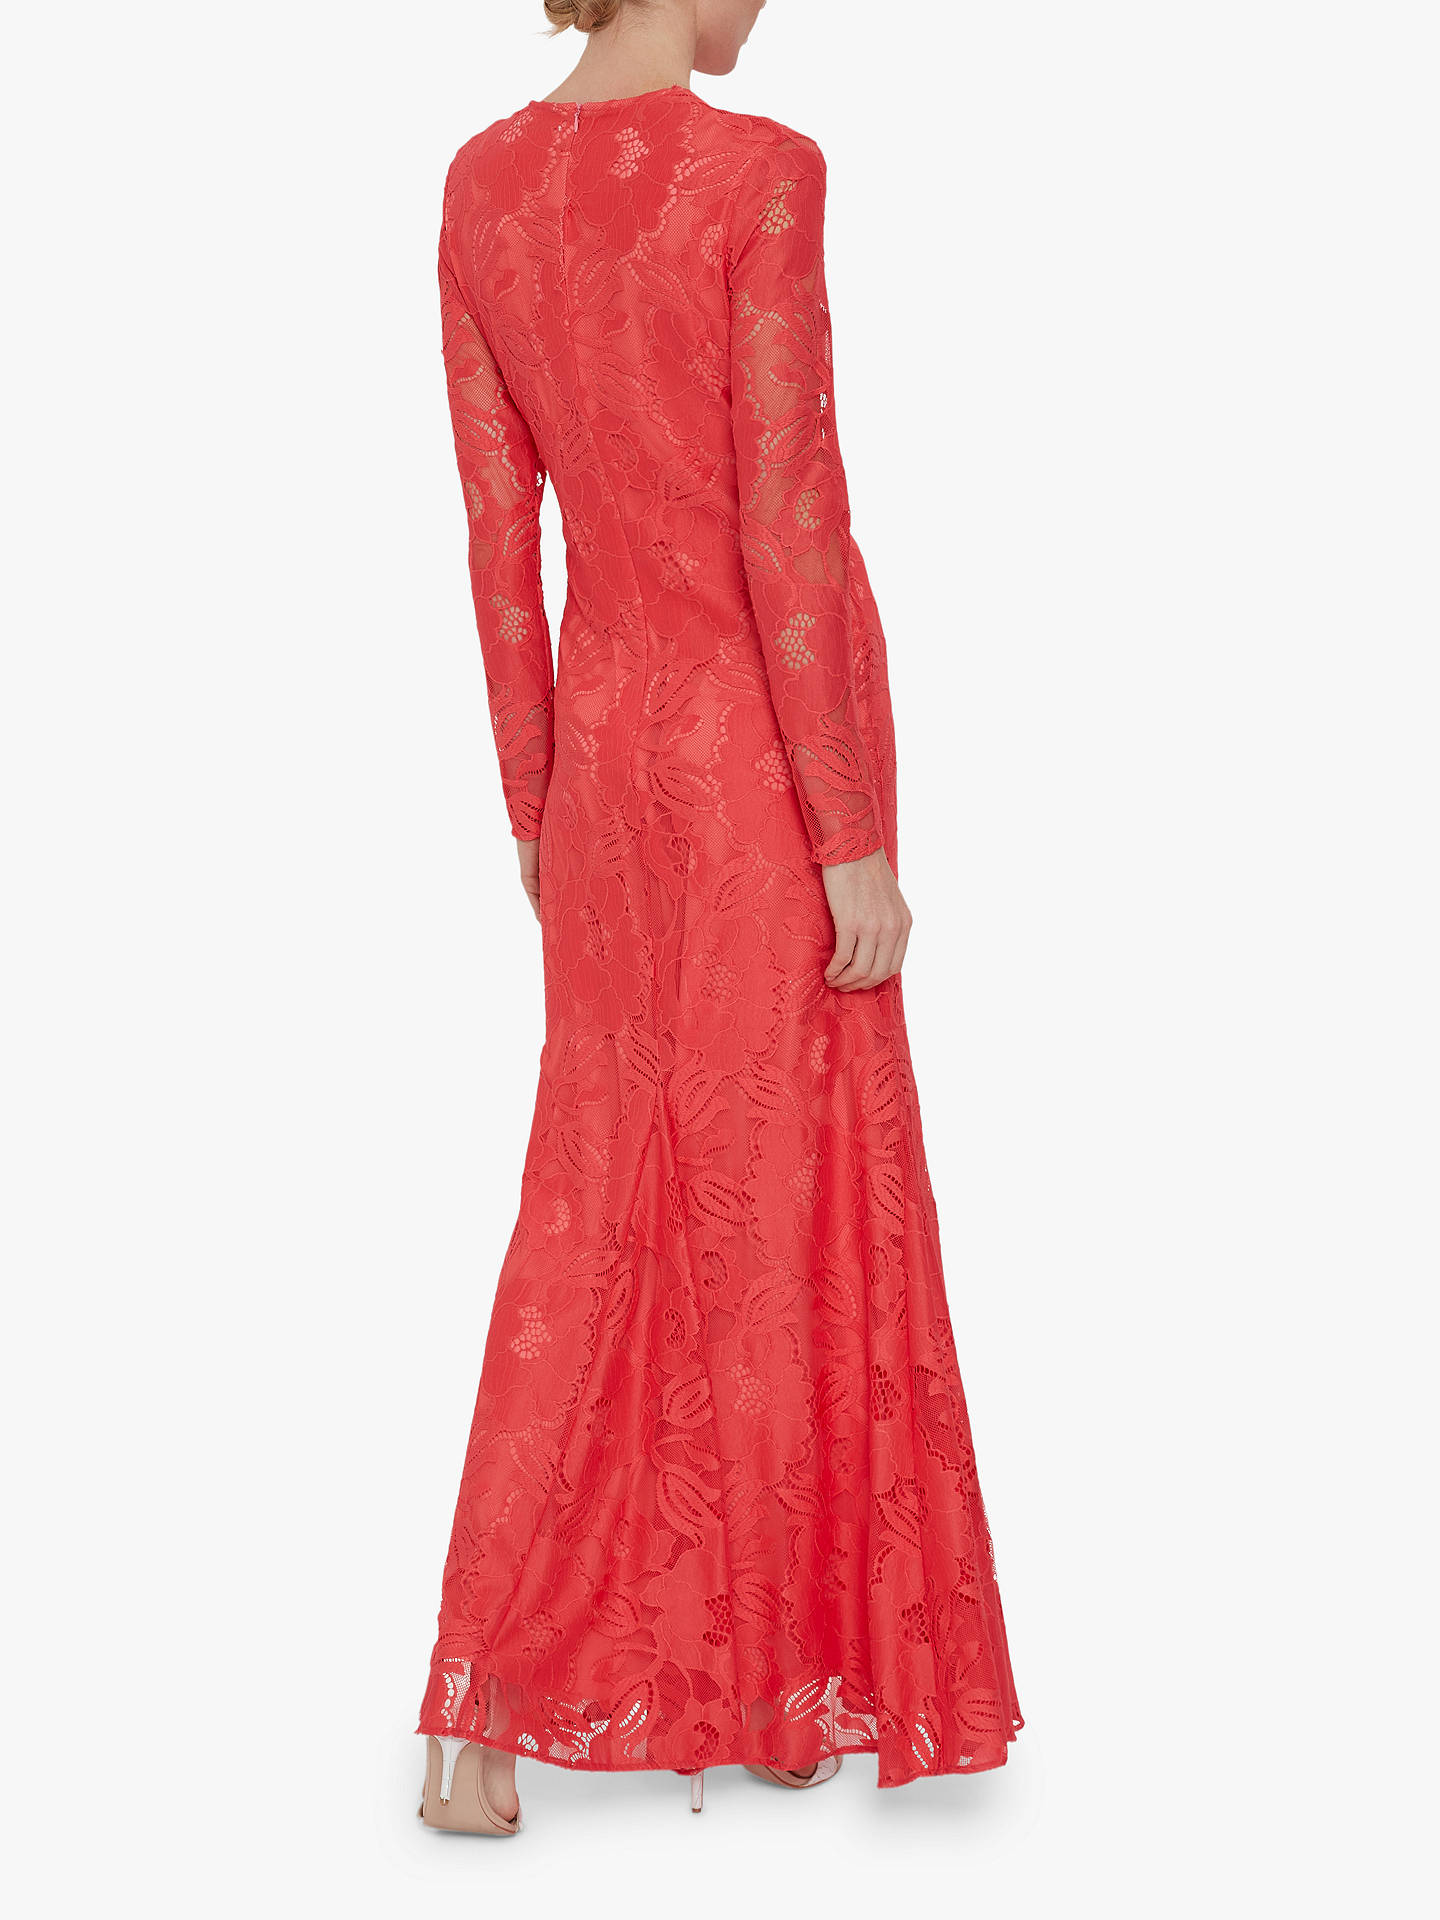 Buy Gina Bacconi April Stretch Lace Maxi Dress, Coral, 10 Online at johnlewis.com